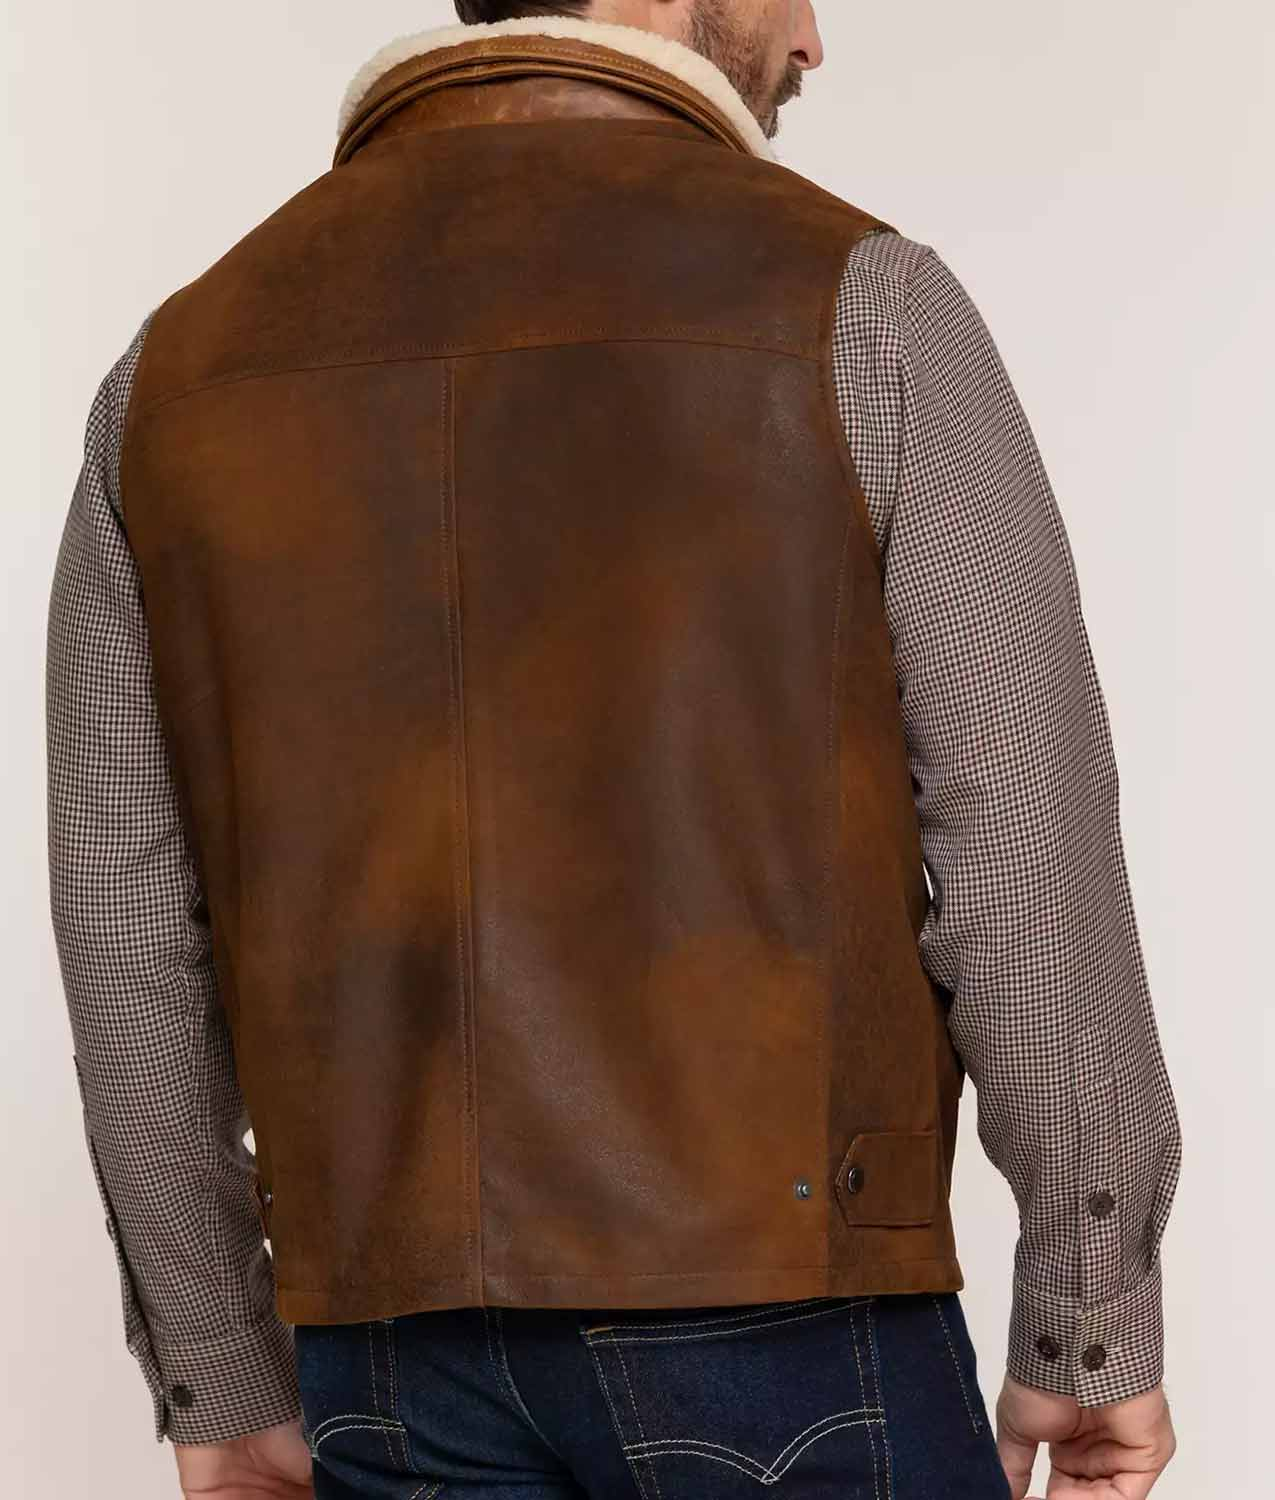 Mens Lambskin Leather Vest